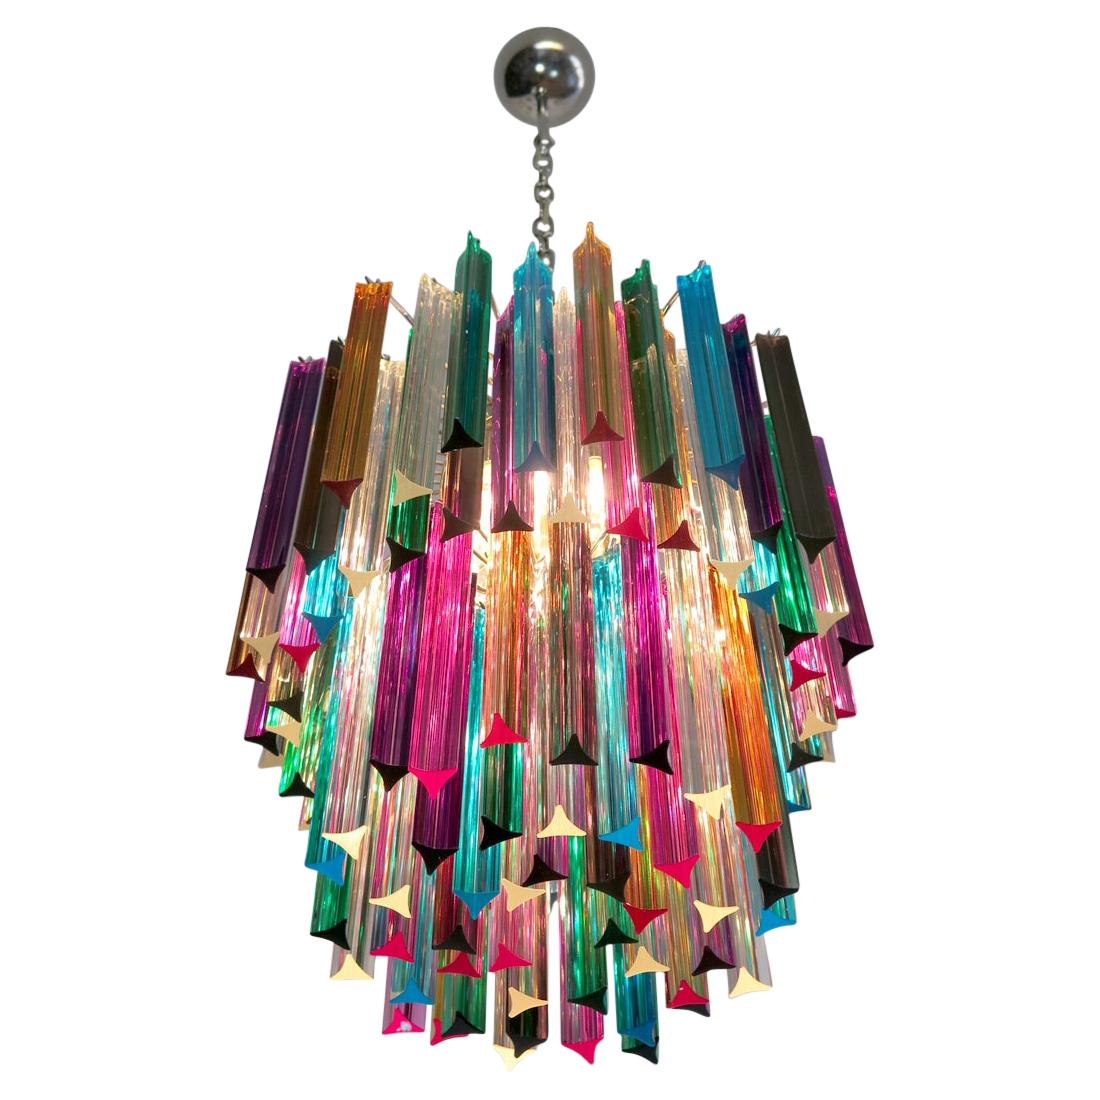 Italian Chandelier Multi-Color Triedri, Murano, 1970s